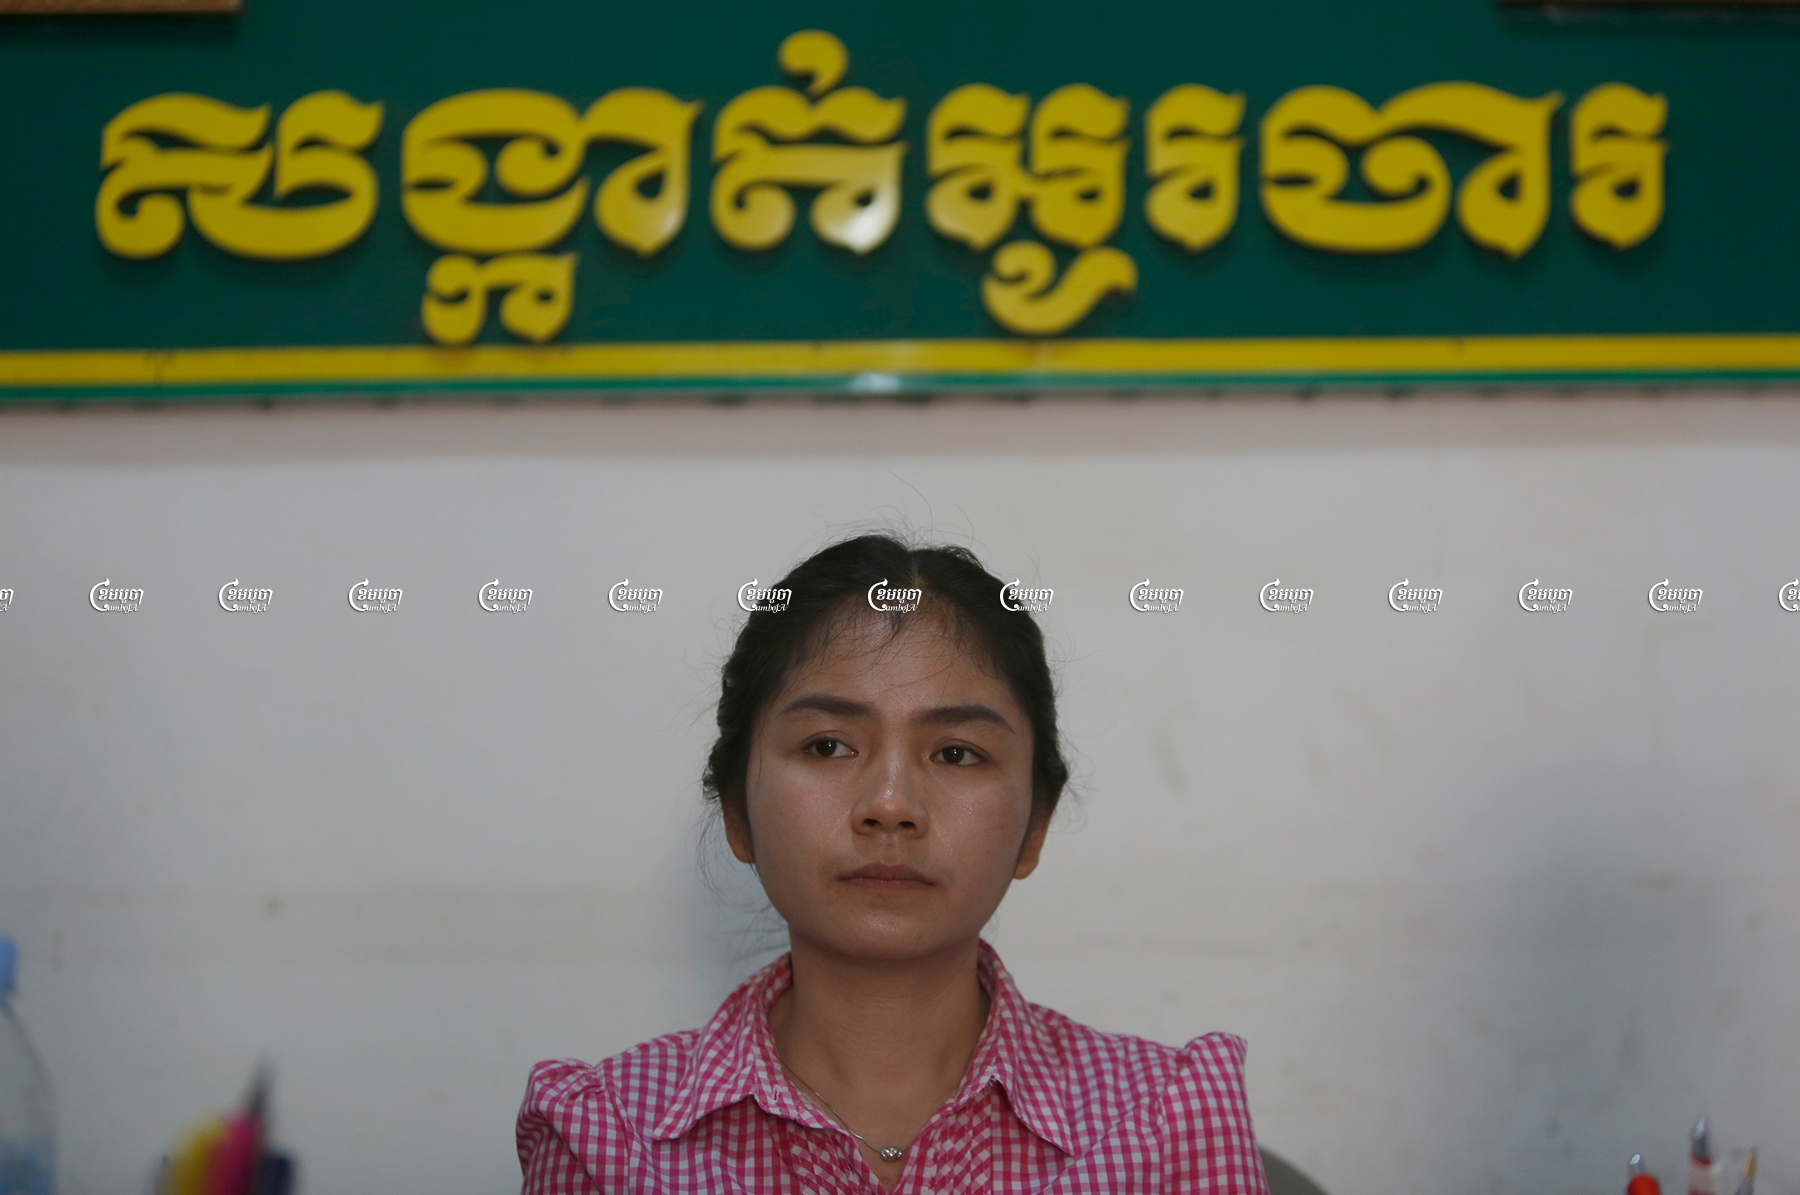 Sin Chan Pov Rozeth, the former chief of O'Cha commune in Battambang province, told CamboJA women face several barriers to political activity. A member of the CNRP before the party was forcibly dissolved, she is pictured here in her office on October 11, 2017. CamboJA/ Pring Samrang